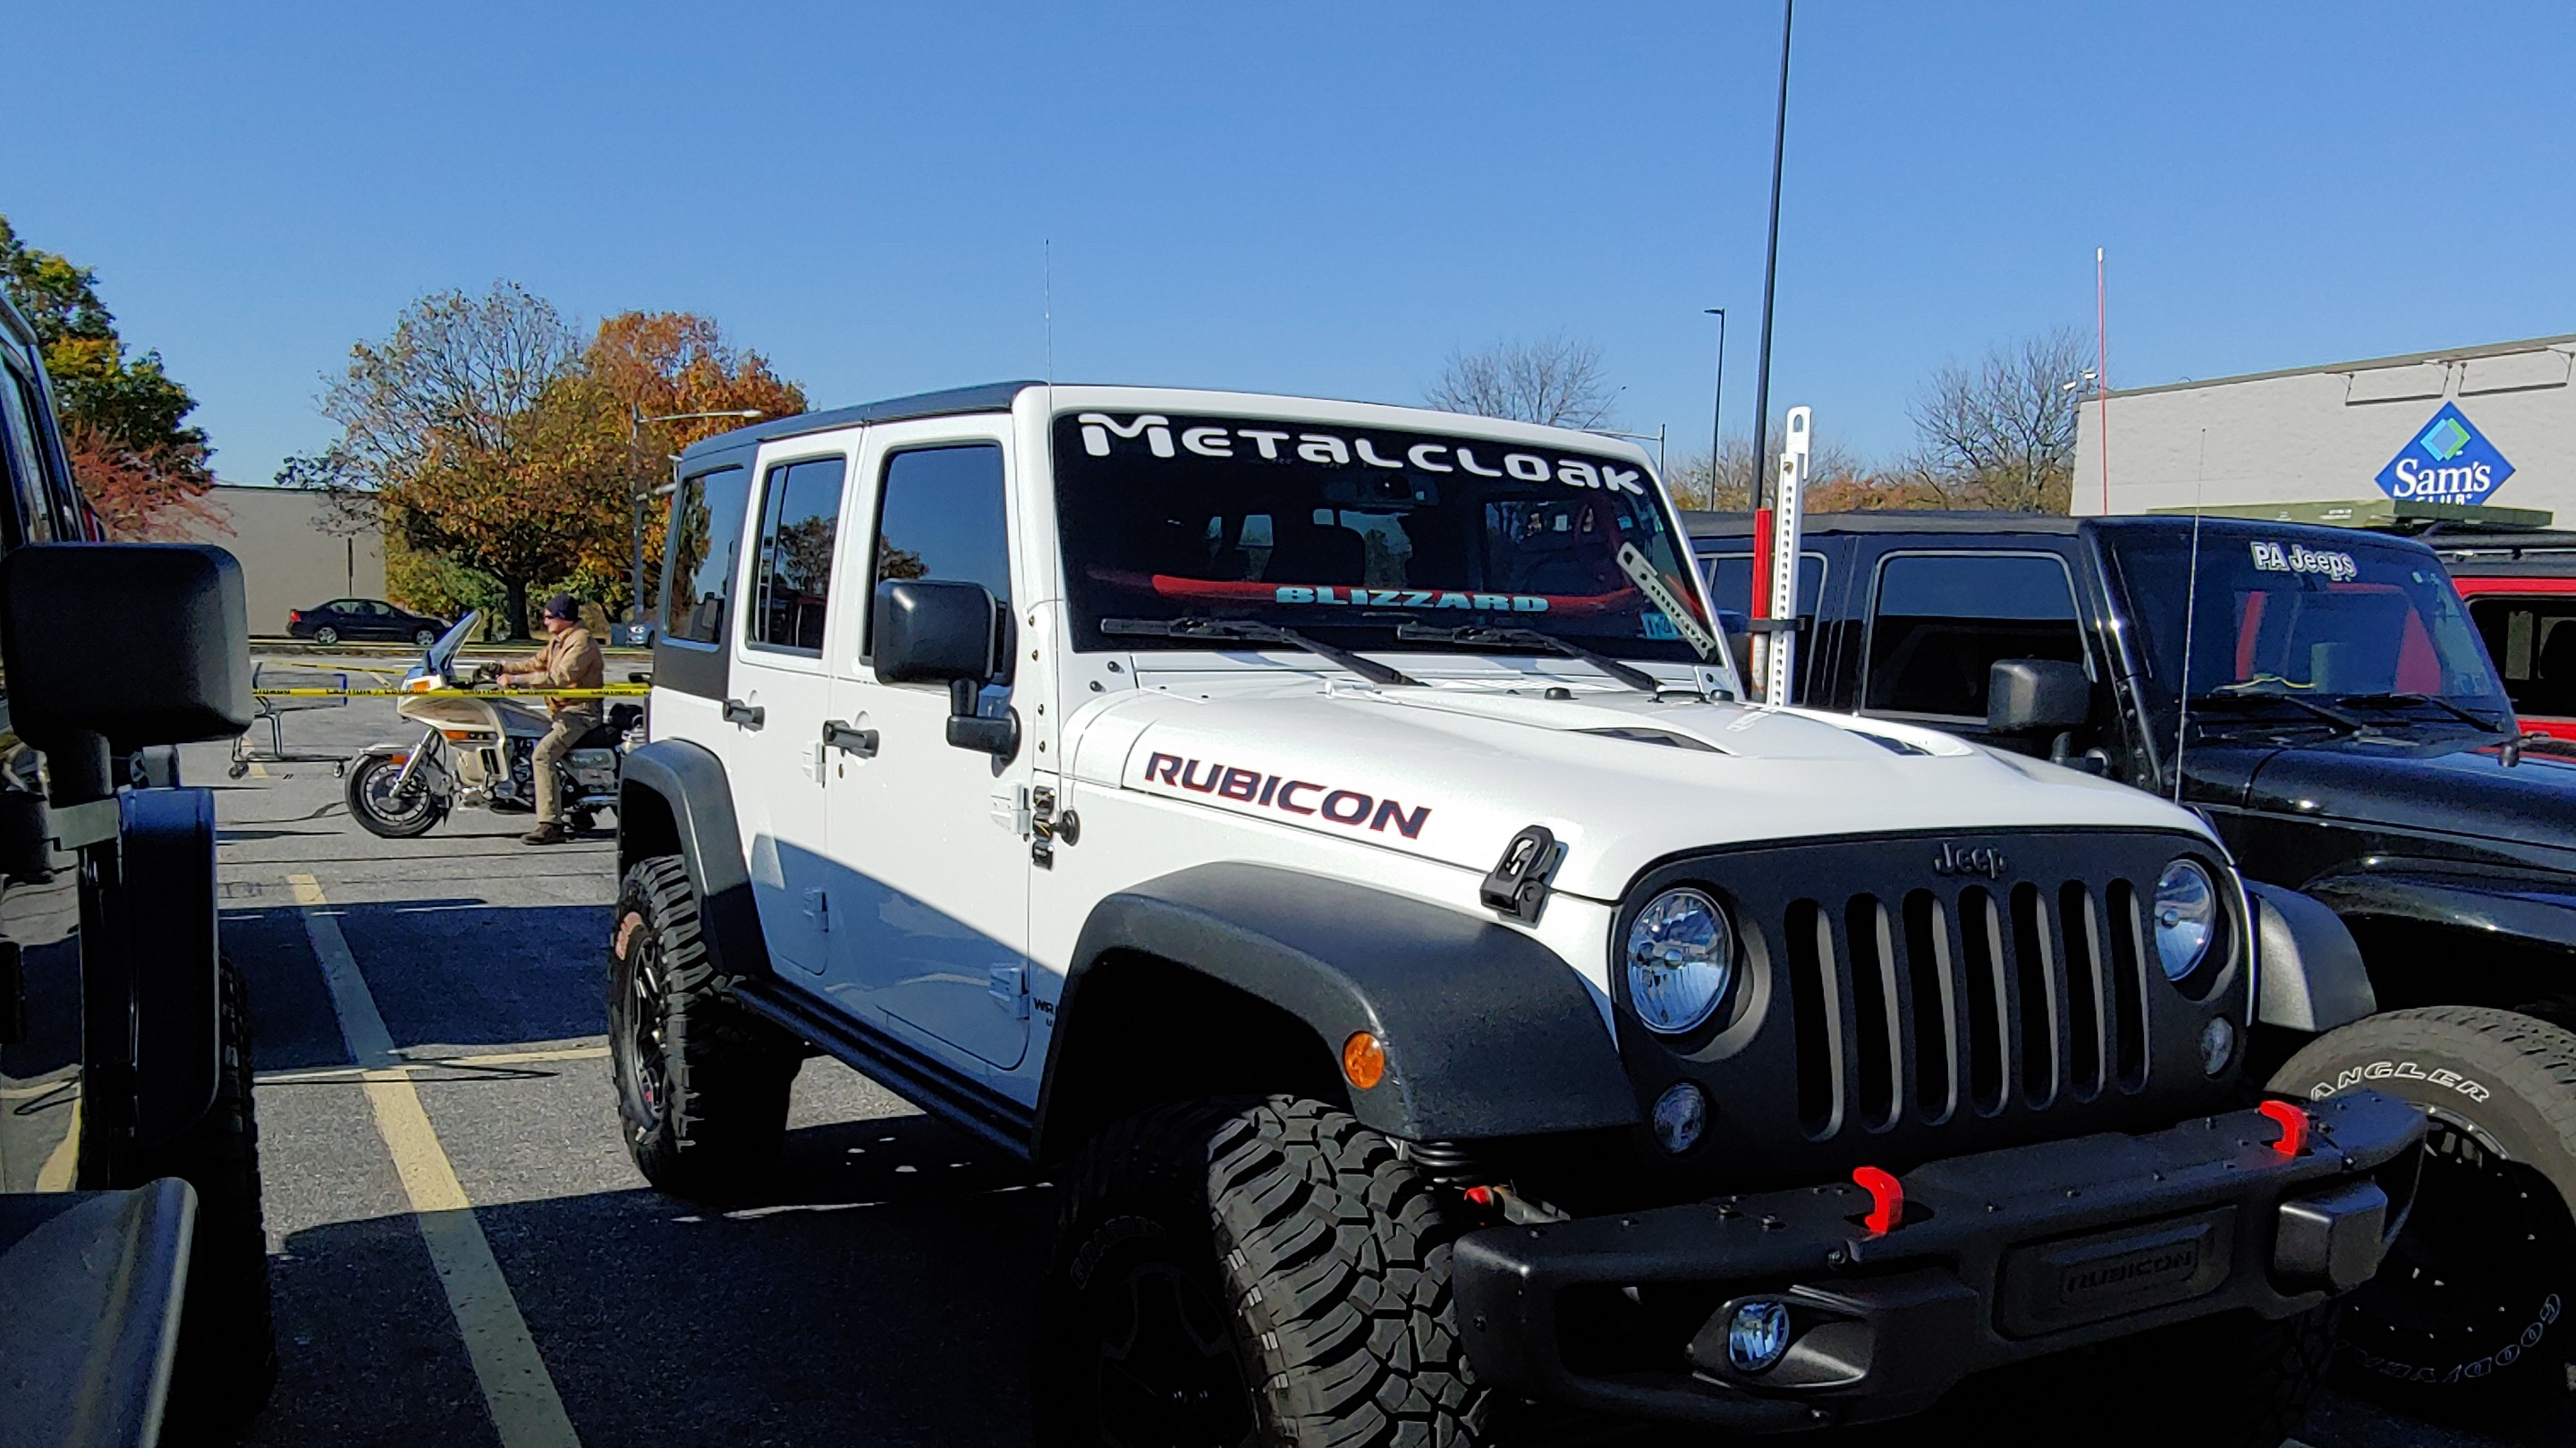 2015 Jeep Wrangler JKU Rubicon Hard Rock 4dr 4x4